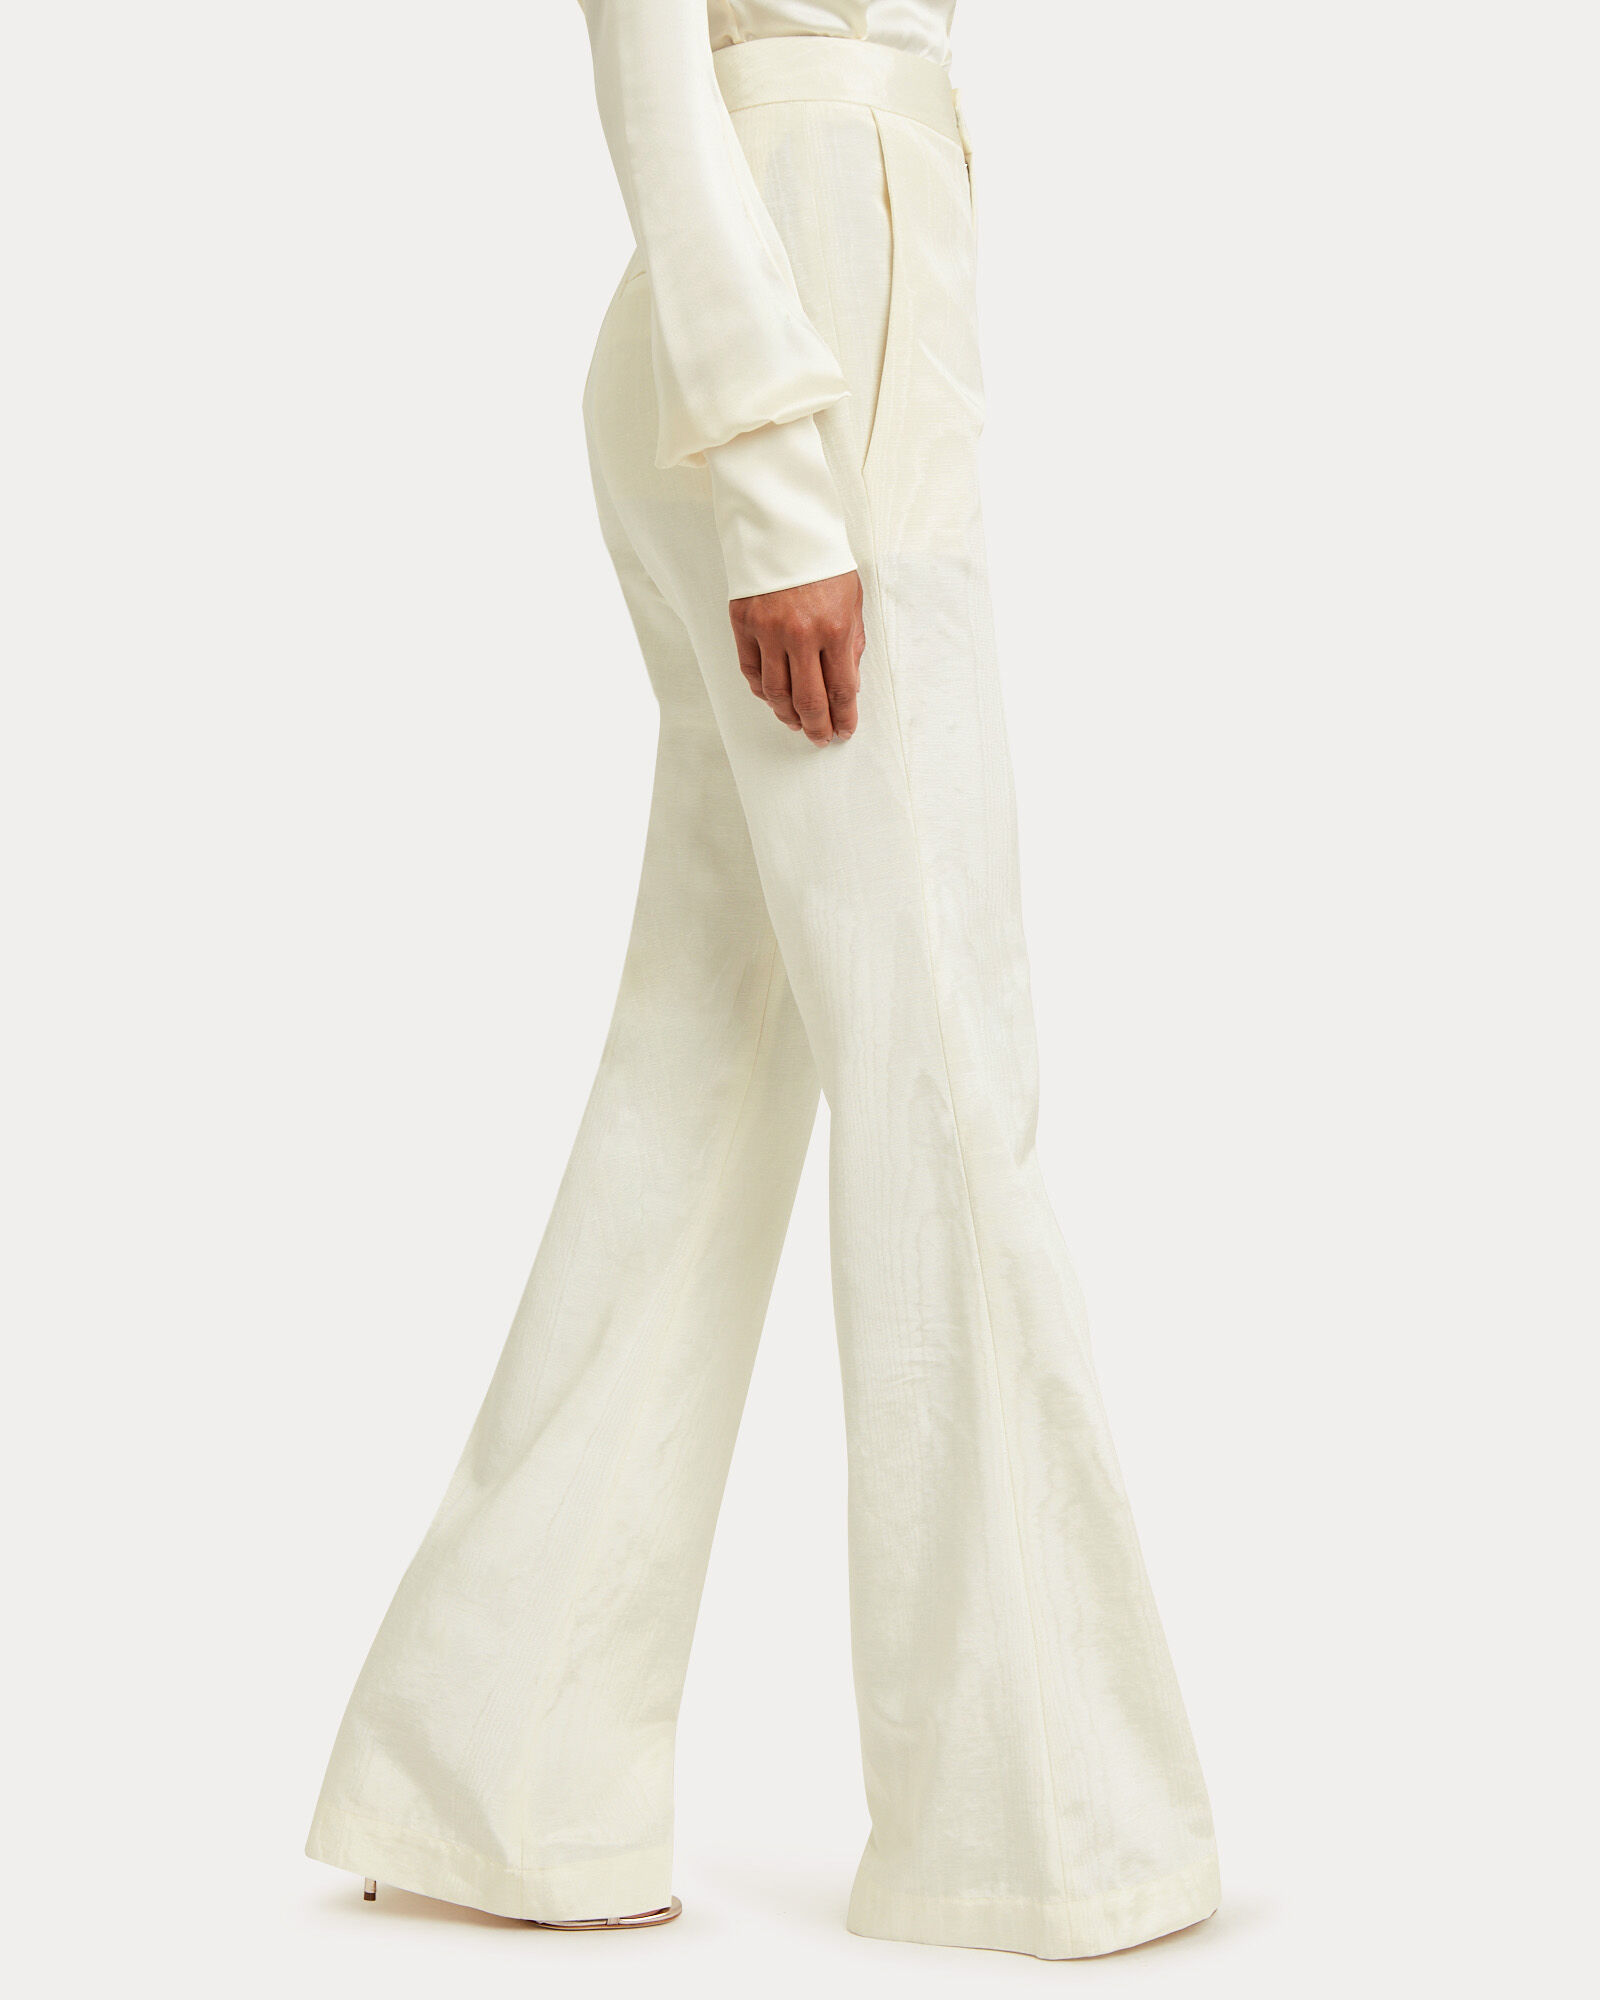 Erin Moiré Flared Trousers, WINTER WHITE, hi-res